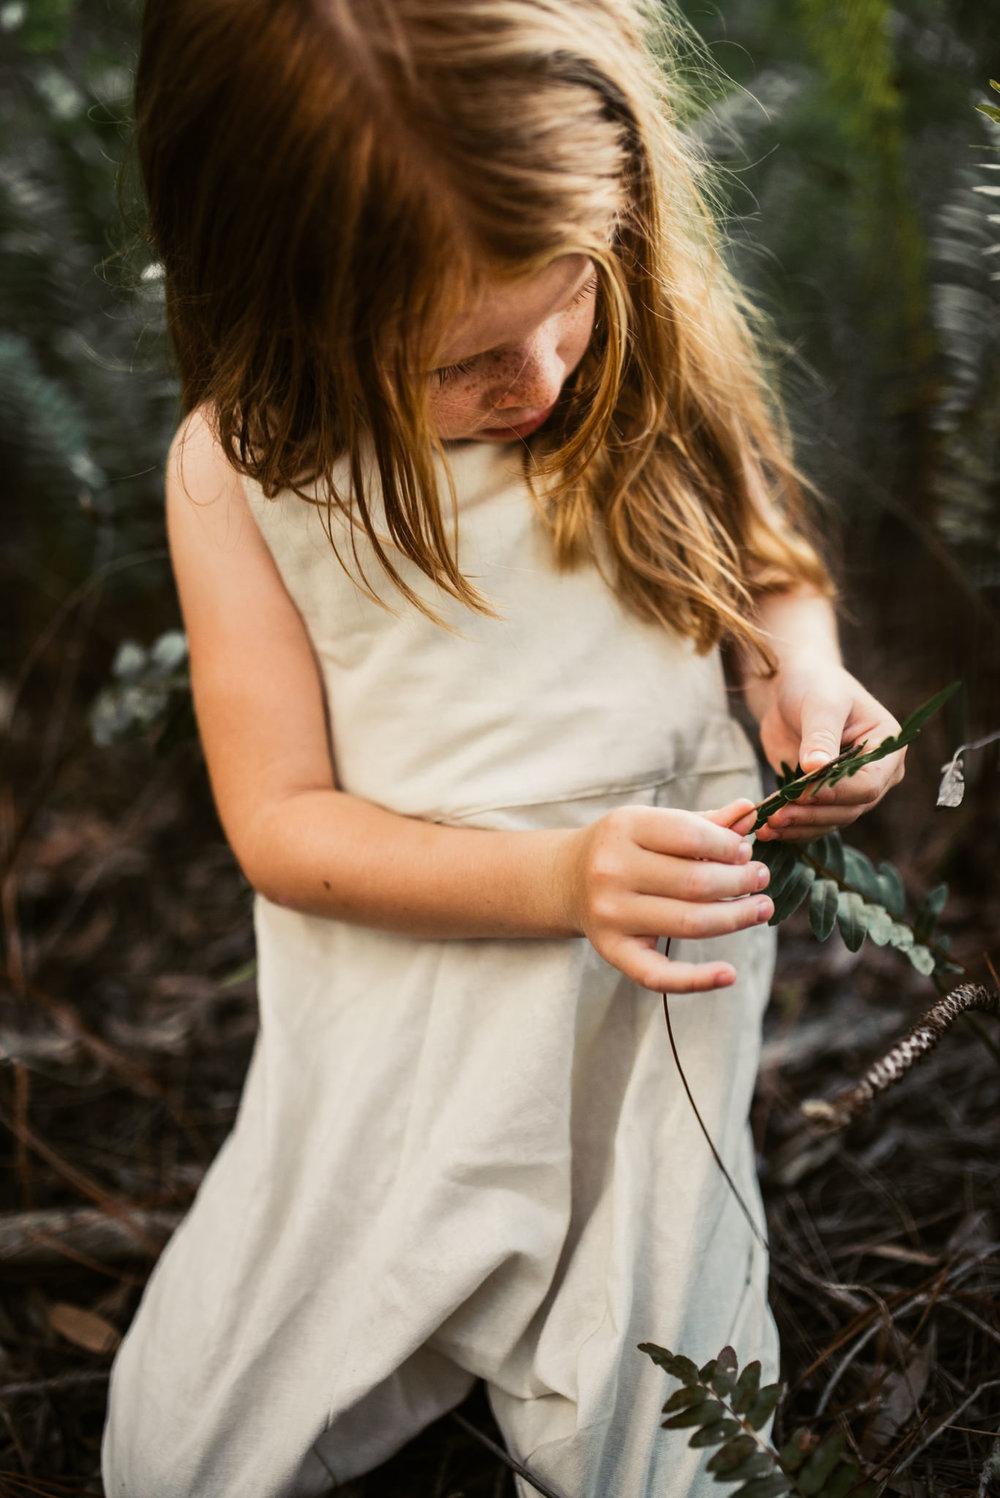 twyla jones photography - treasure coast florida - childrens adventure clothing commercial shoot--46.jpg